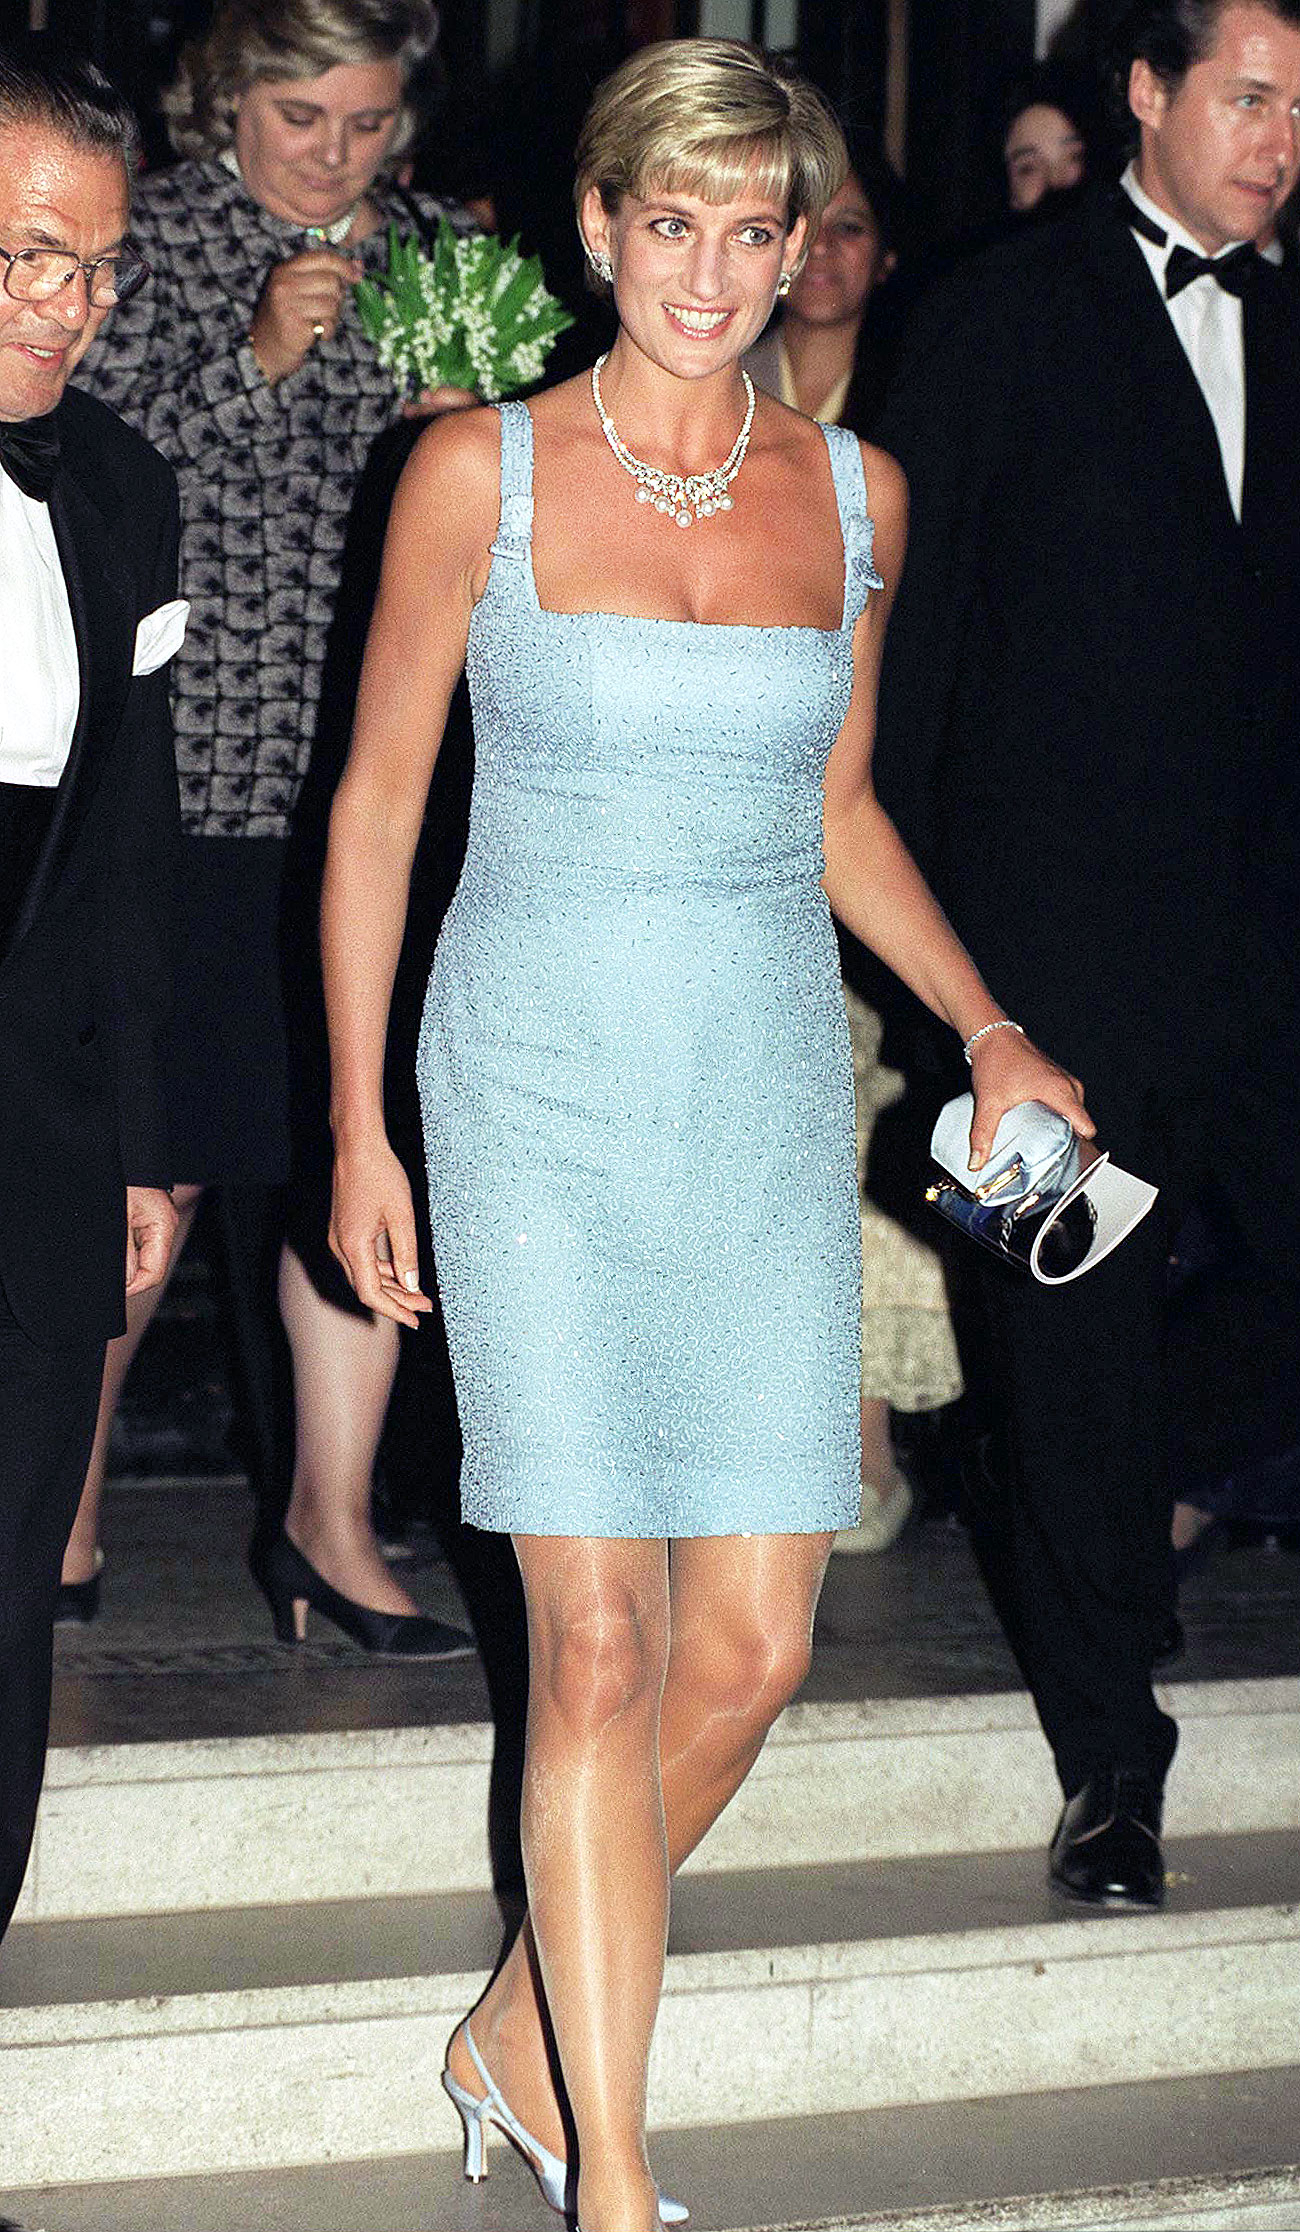 Princess Diana's iconic diamond and pearl necklace is up for auction recommendations